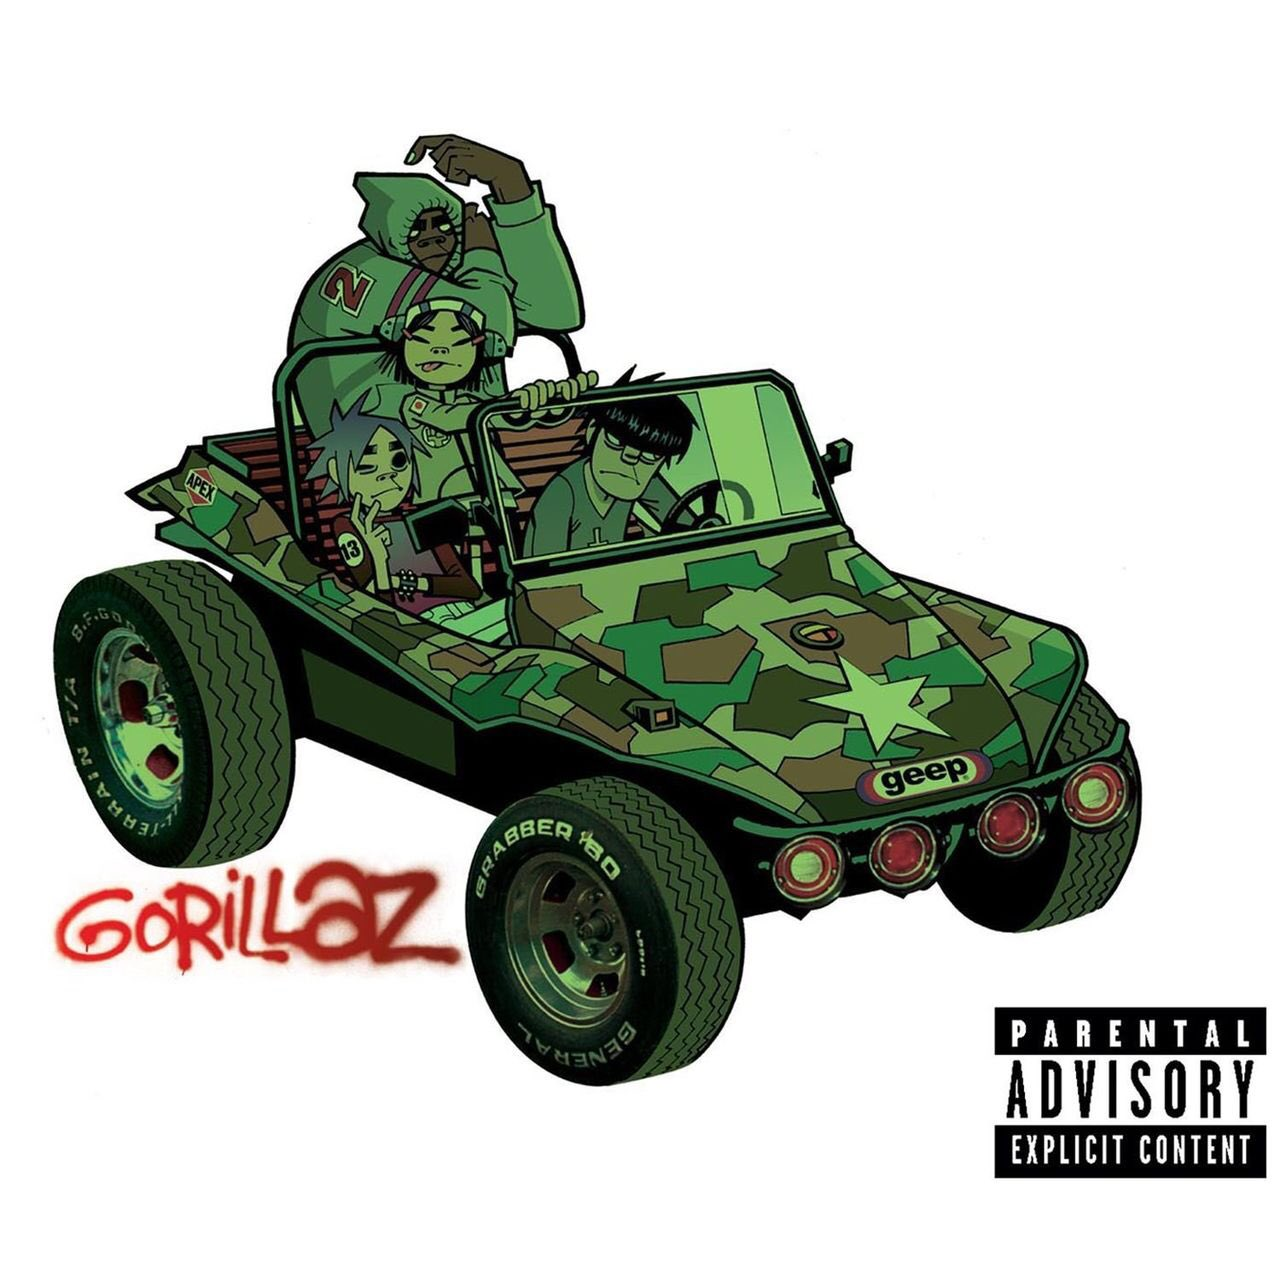 Gorillaz - s/t -Sound Check (Gravity) -Rock the House -M1 A1 (this was also my first CD when I was like 11-12) https://t.co/Bm1yEV1GXC